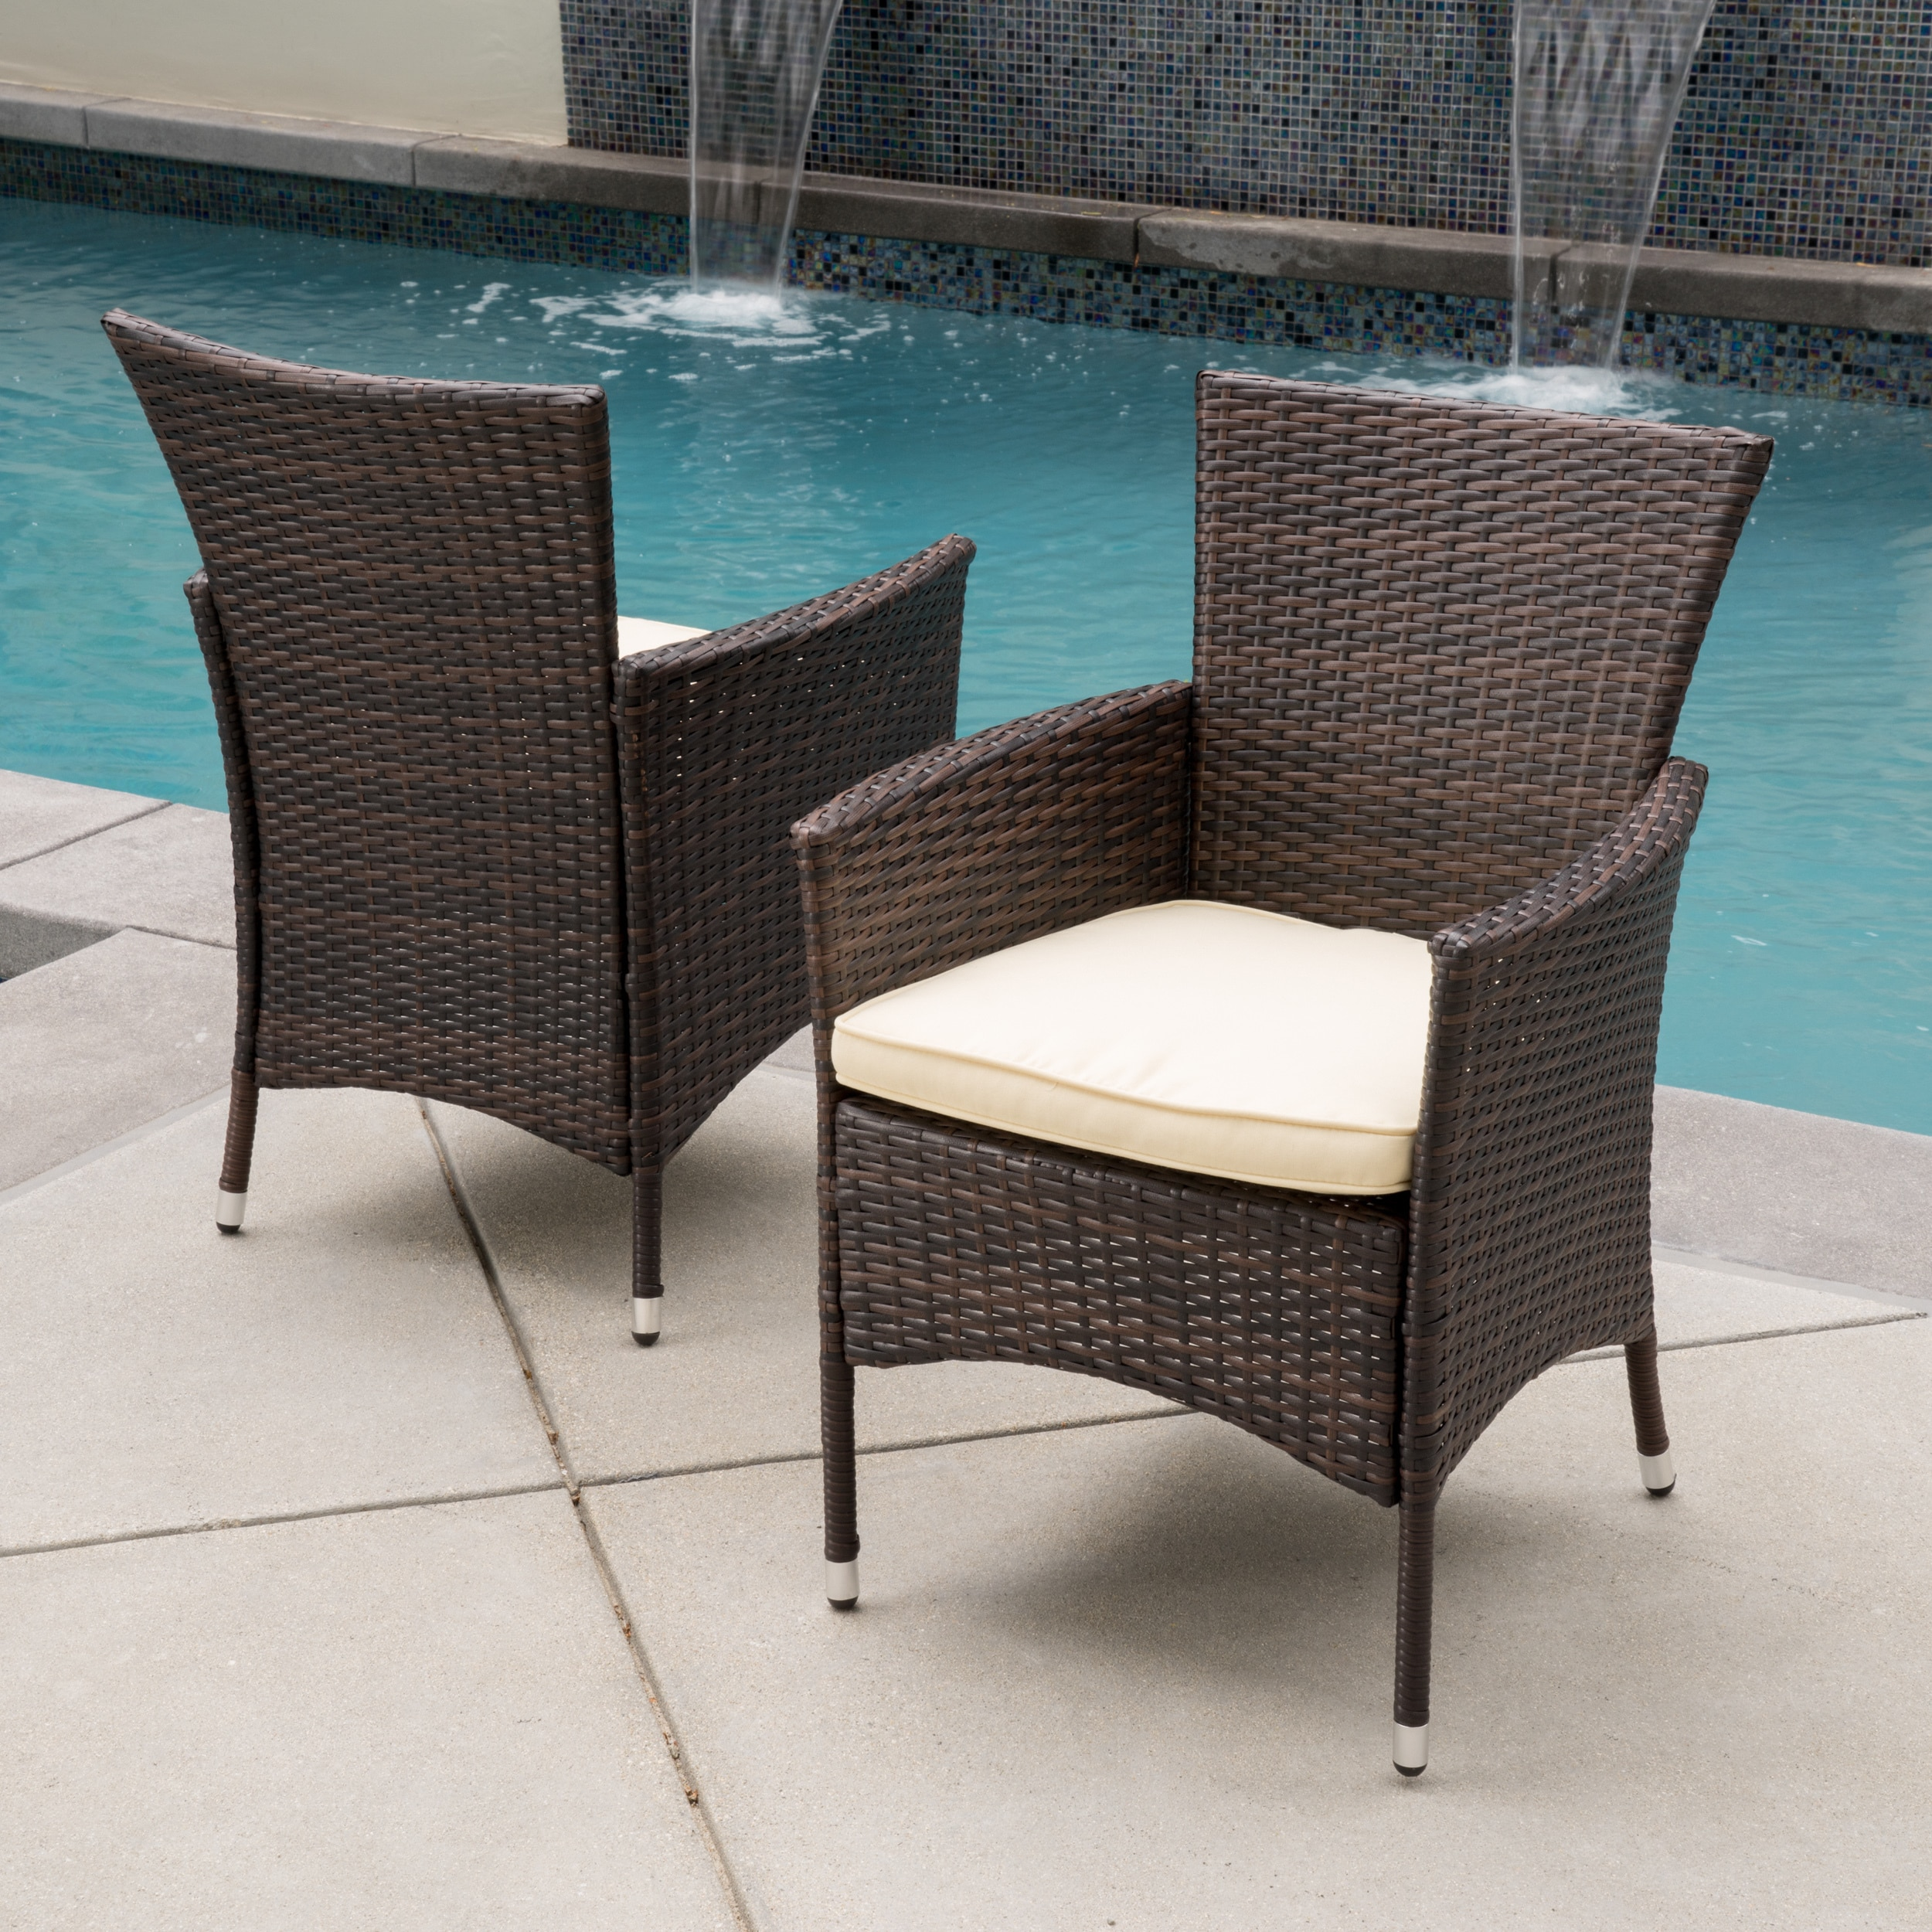 Gentil Shop Malta Outdoor Wicker Dining Chair With Cushion By Christopher Knight  Home (Set Of 2)   On Sale   Free Shipping Today   Overstock.com   10170620